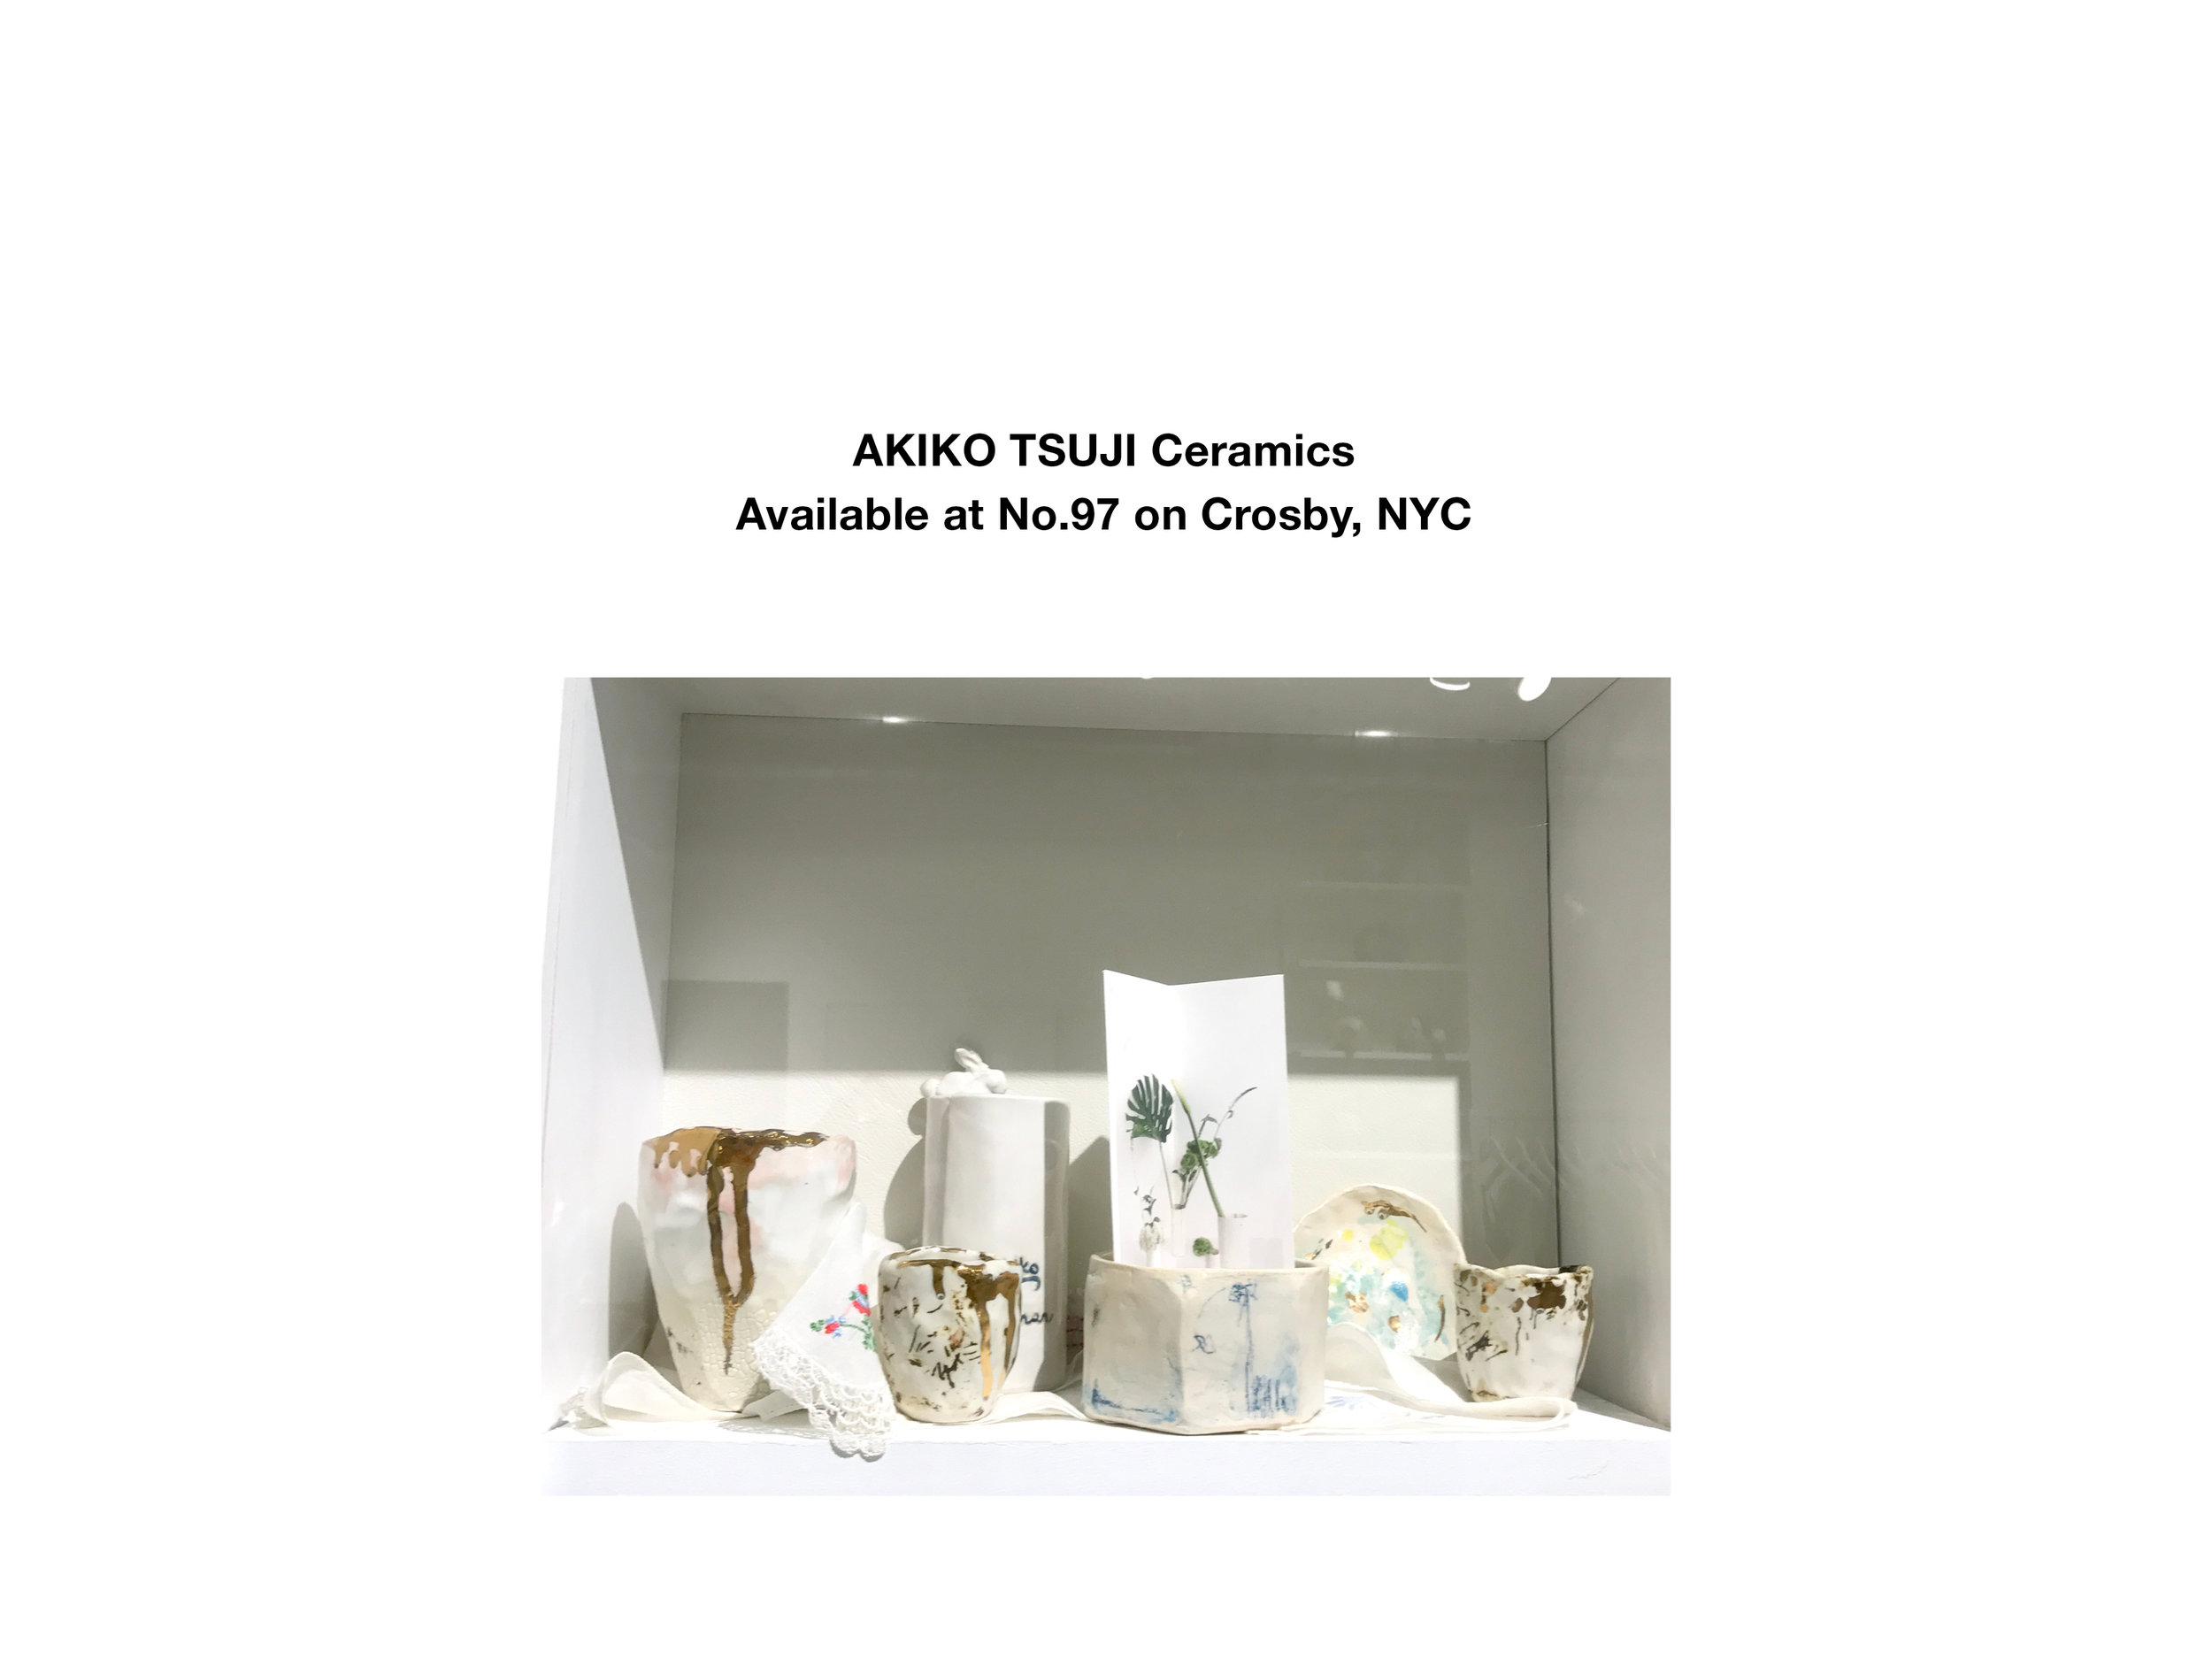 Hand built ceramic wares are now available at No.97 on Crosby! Cups and dishes with 22k gold luster are also available.